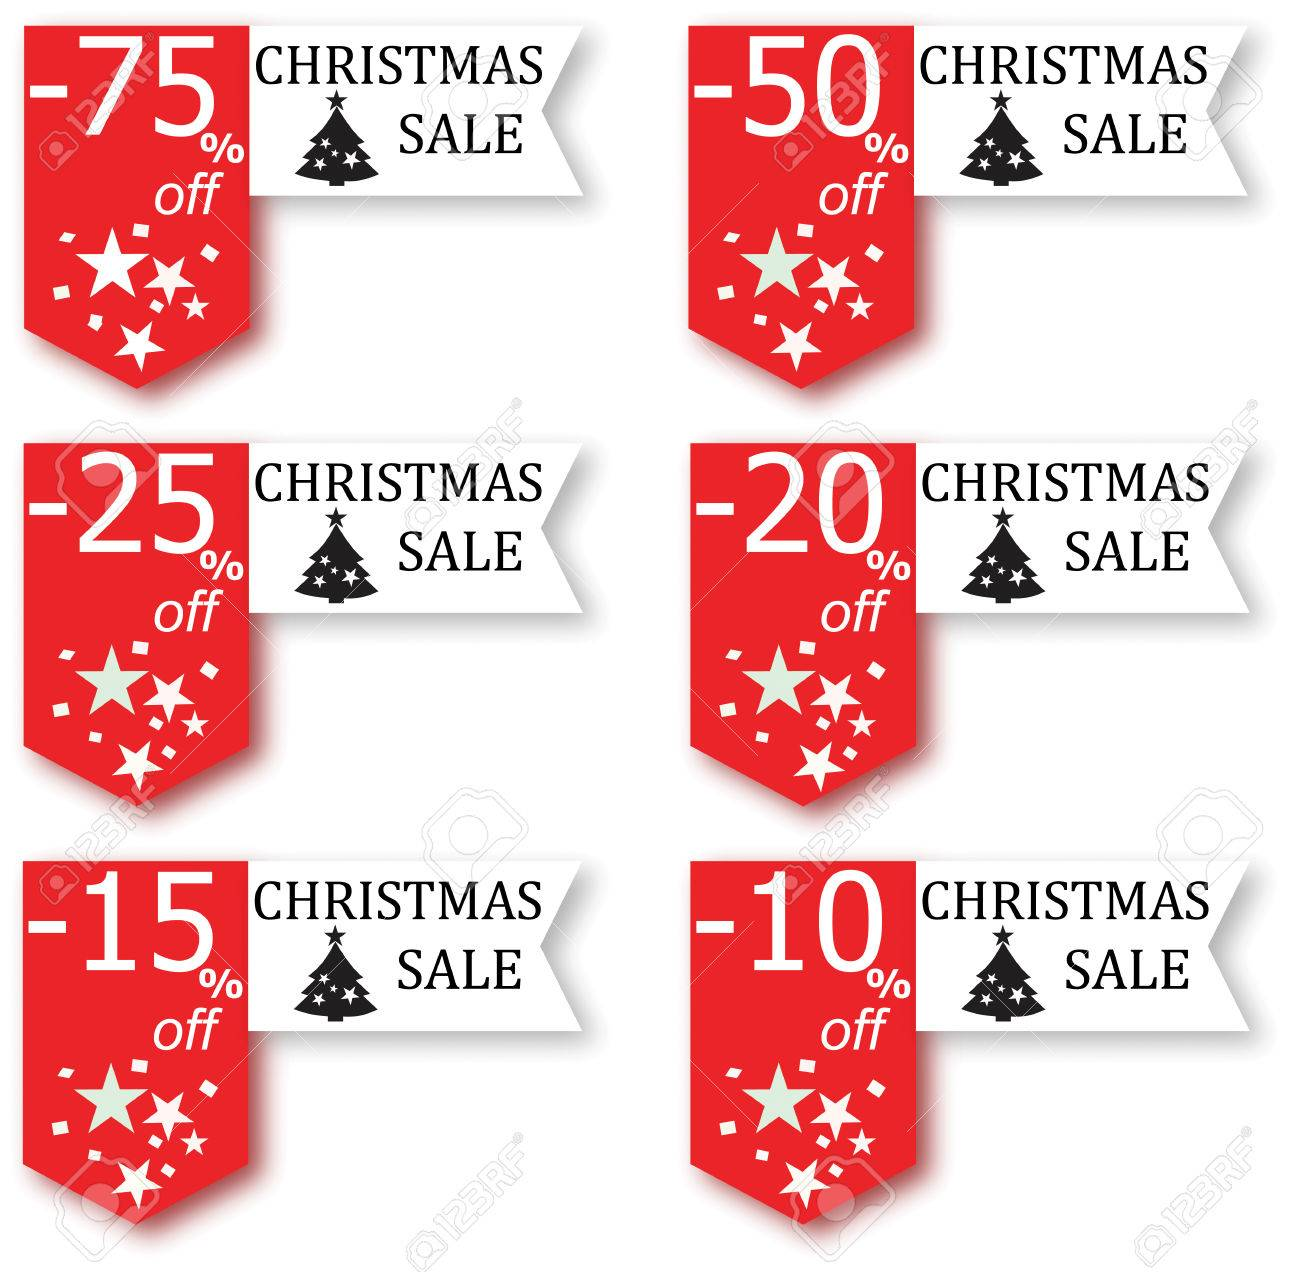 Christmas Sale Sign Royalty Free Cliparts, Vectors, And Stock ...